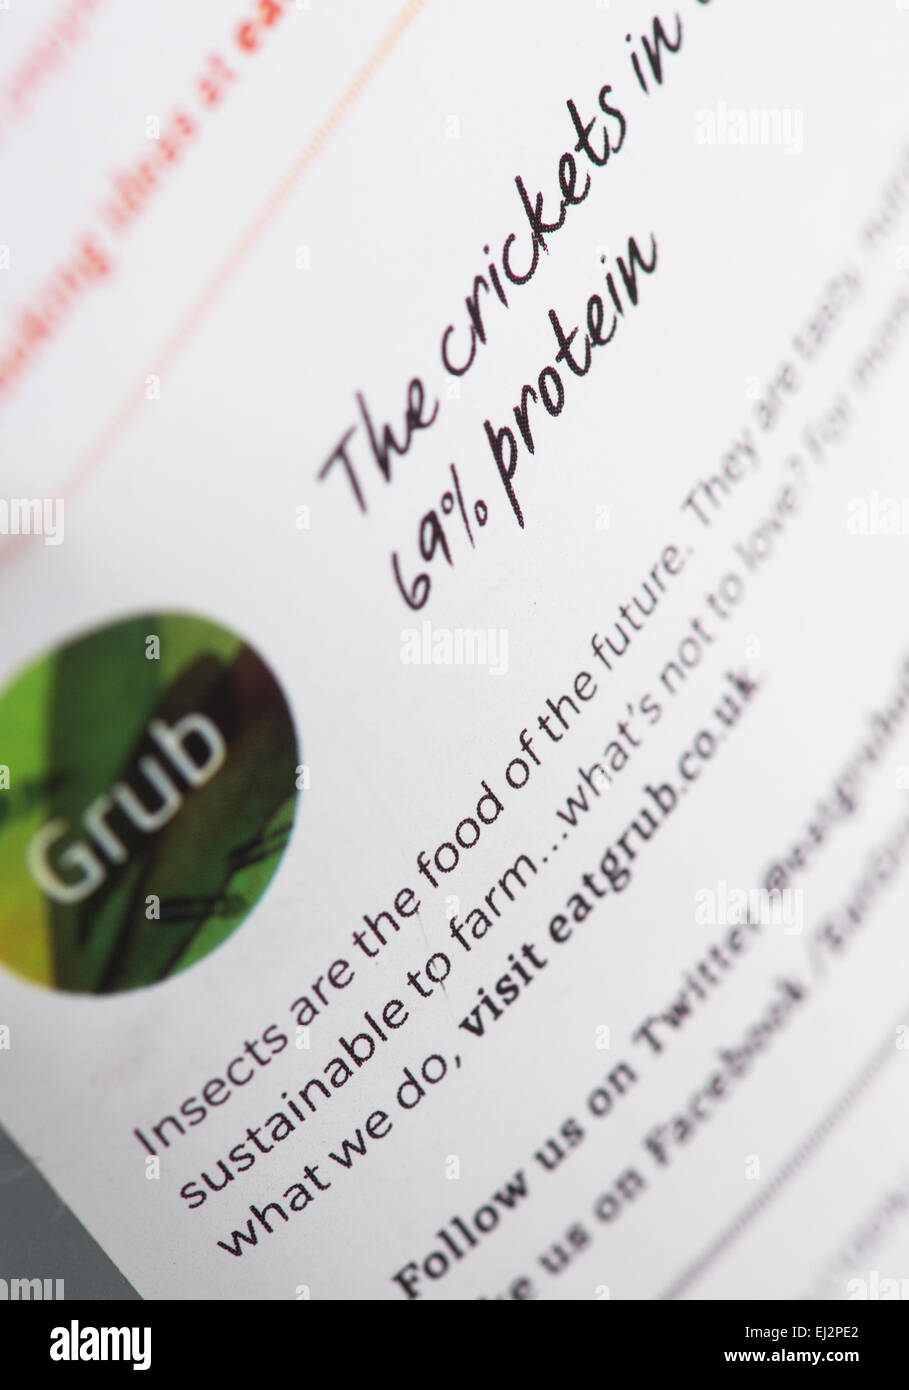 Edible insects. Cricket packet consumer information. Food of the future - Stock Image